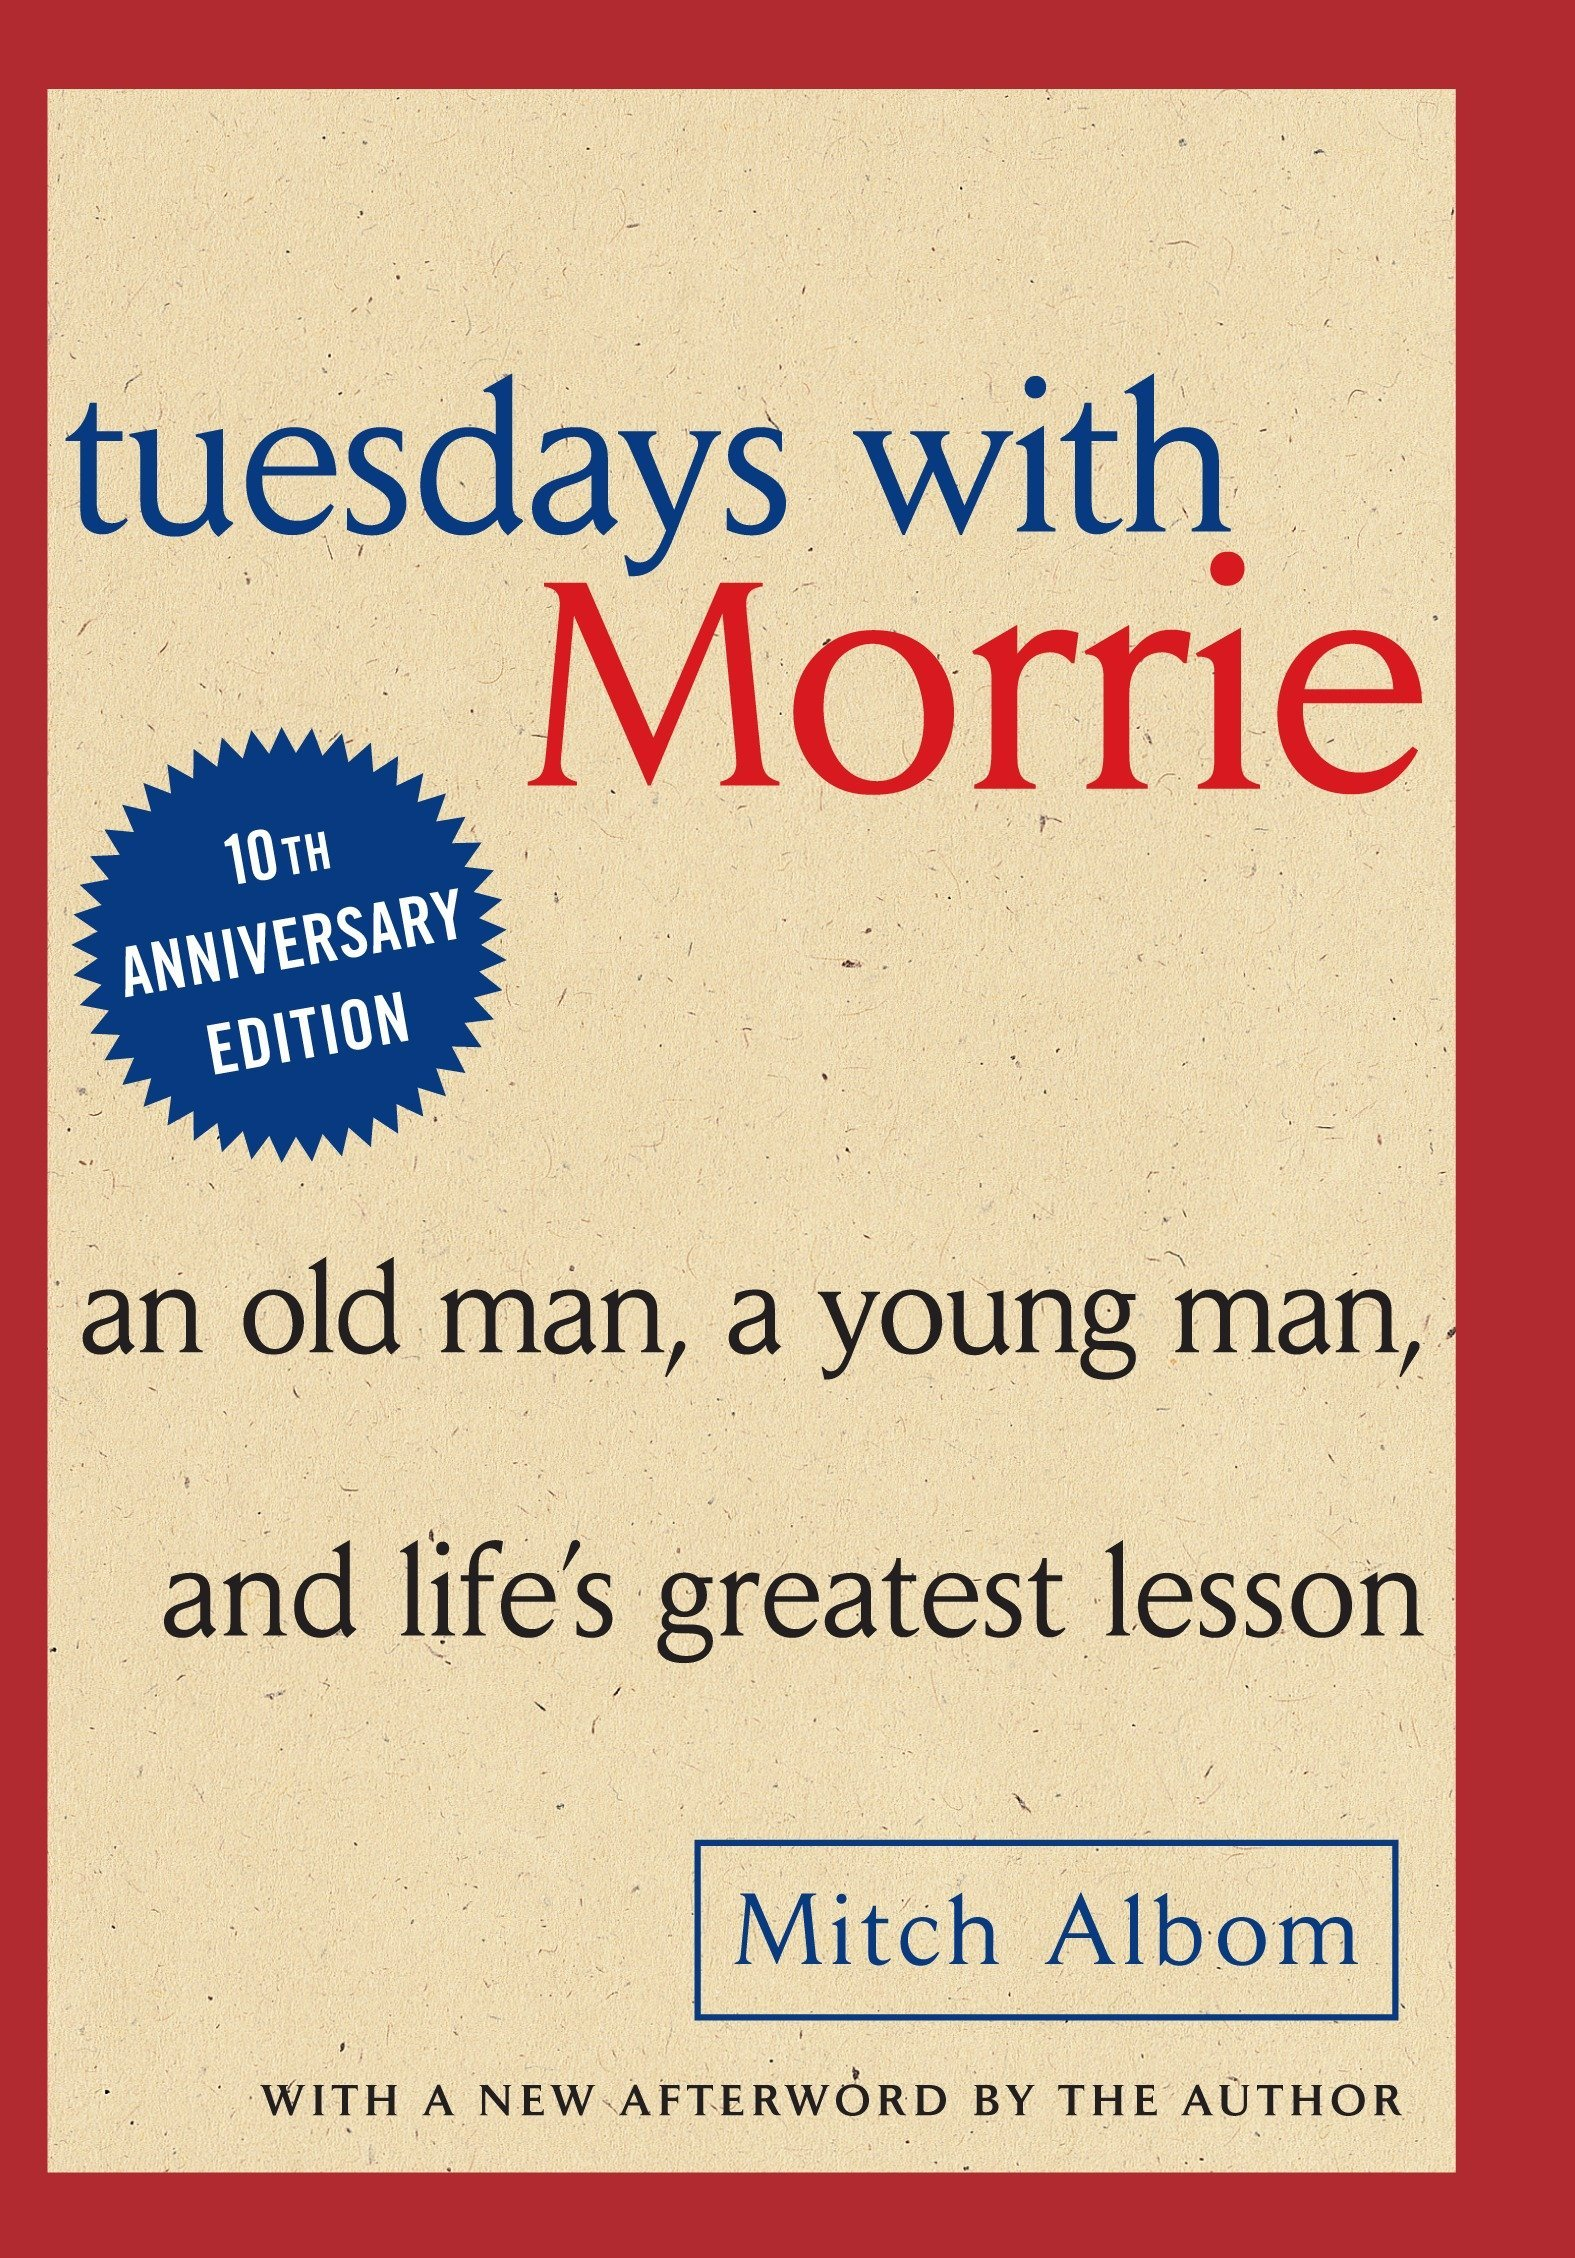 Tuesdays with Morrie book cover by Mitch Albom